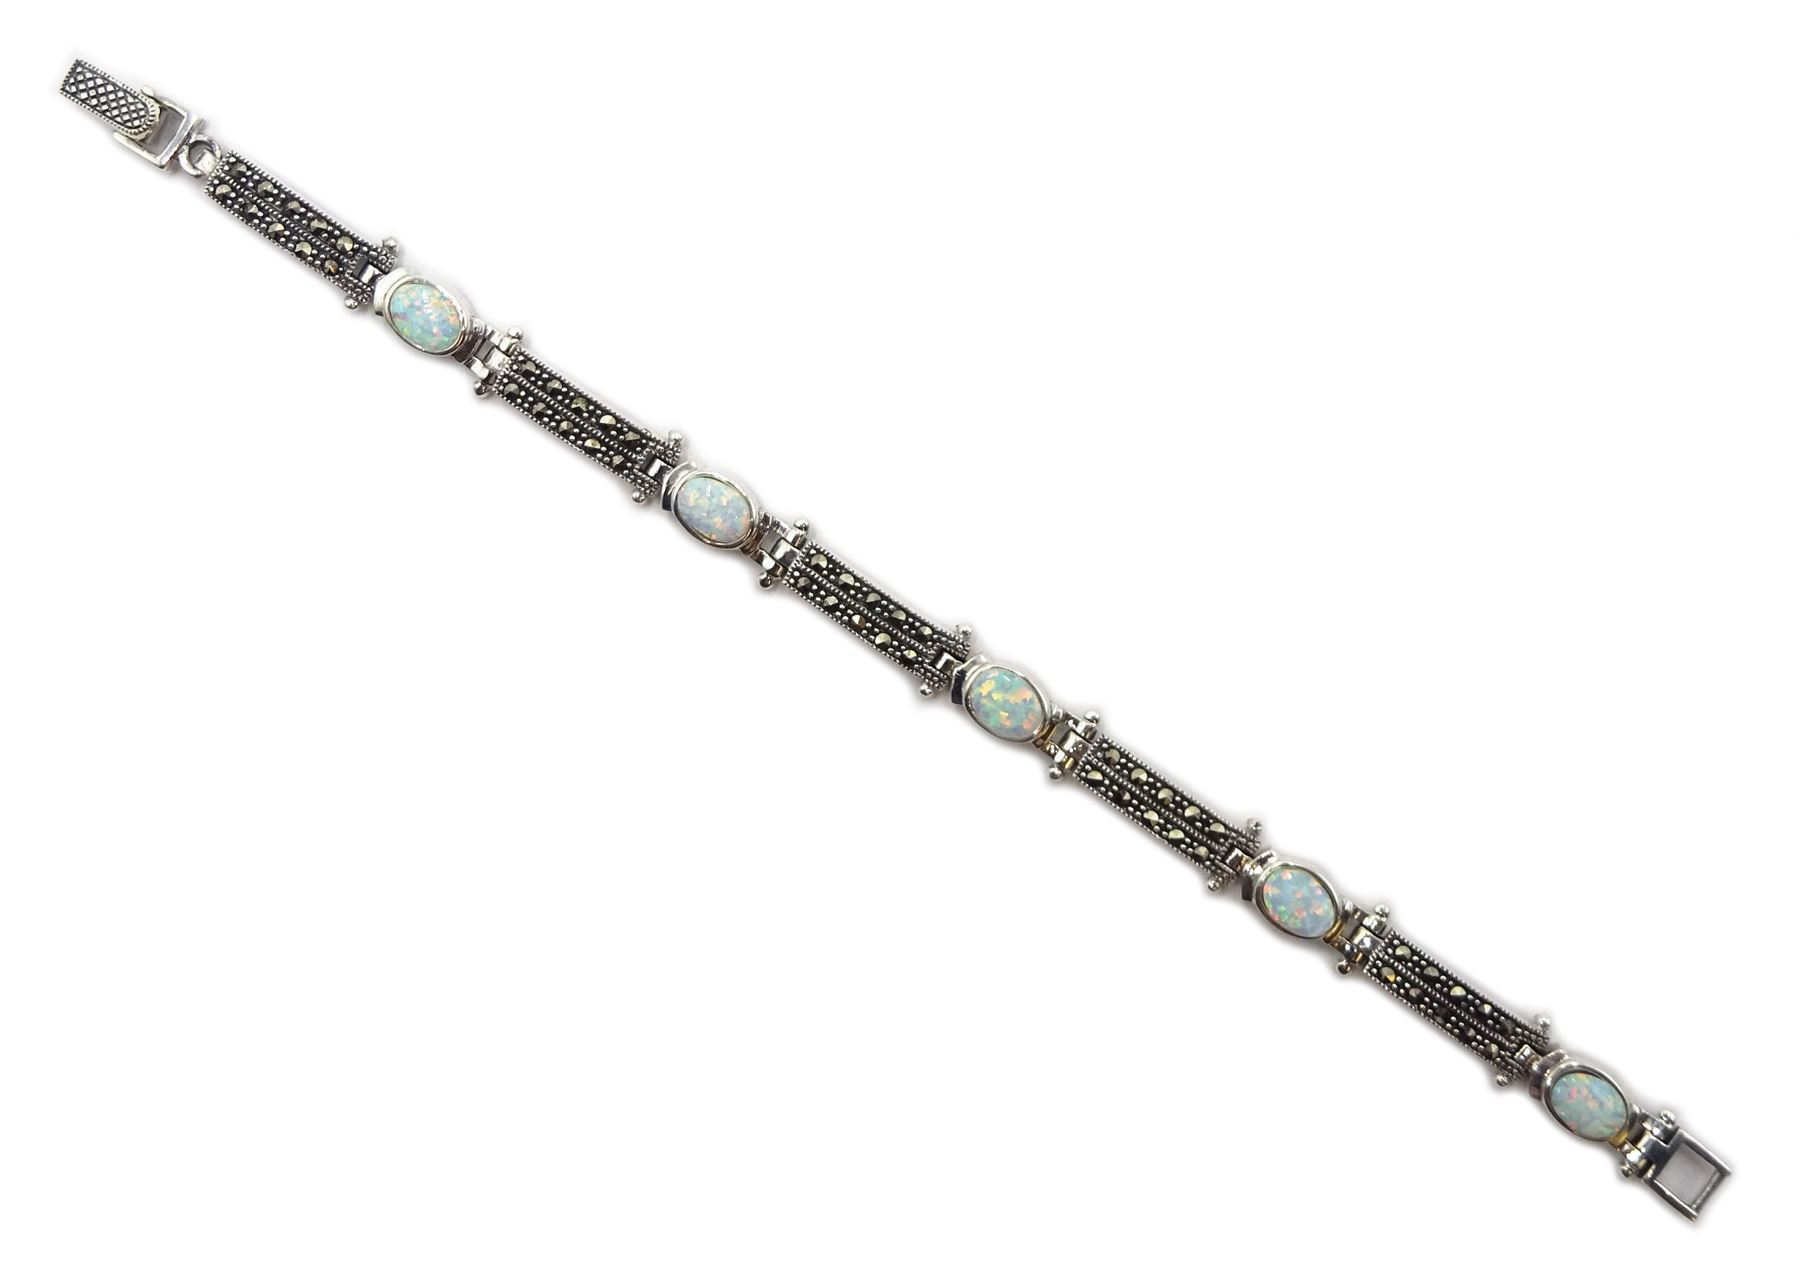 Silver opal and marcasite bracelet - Image 2 of 3